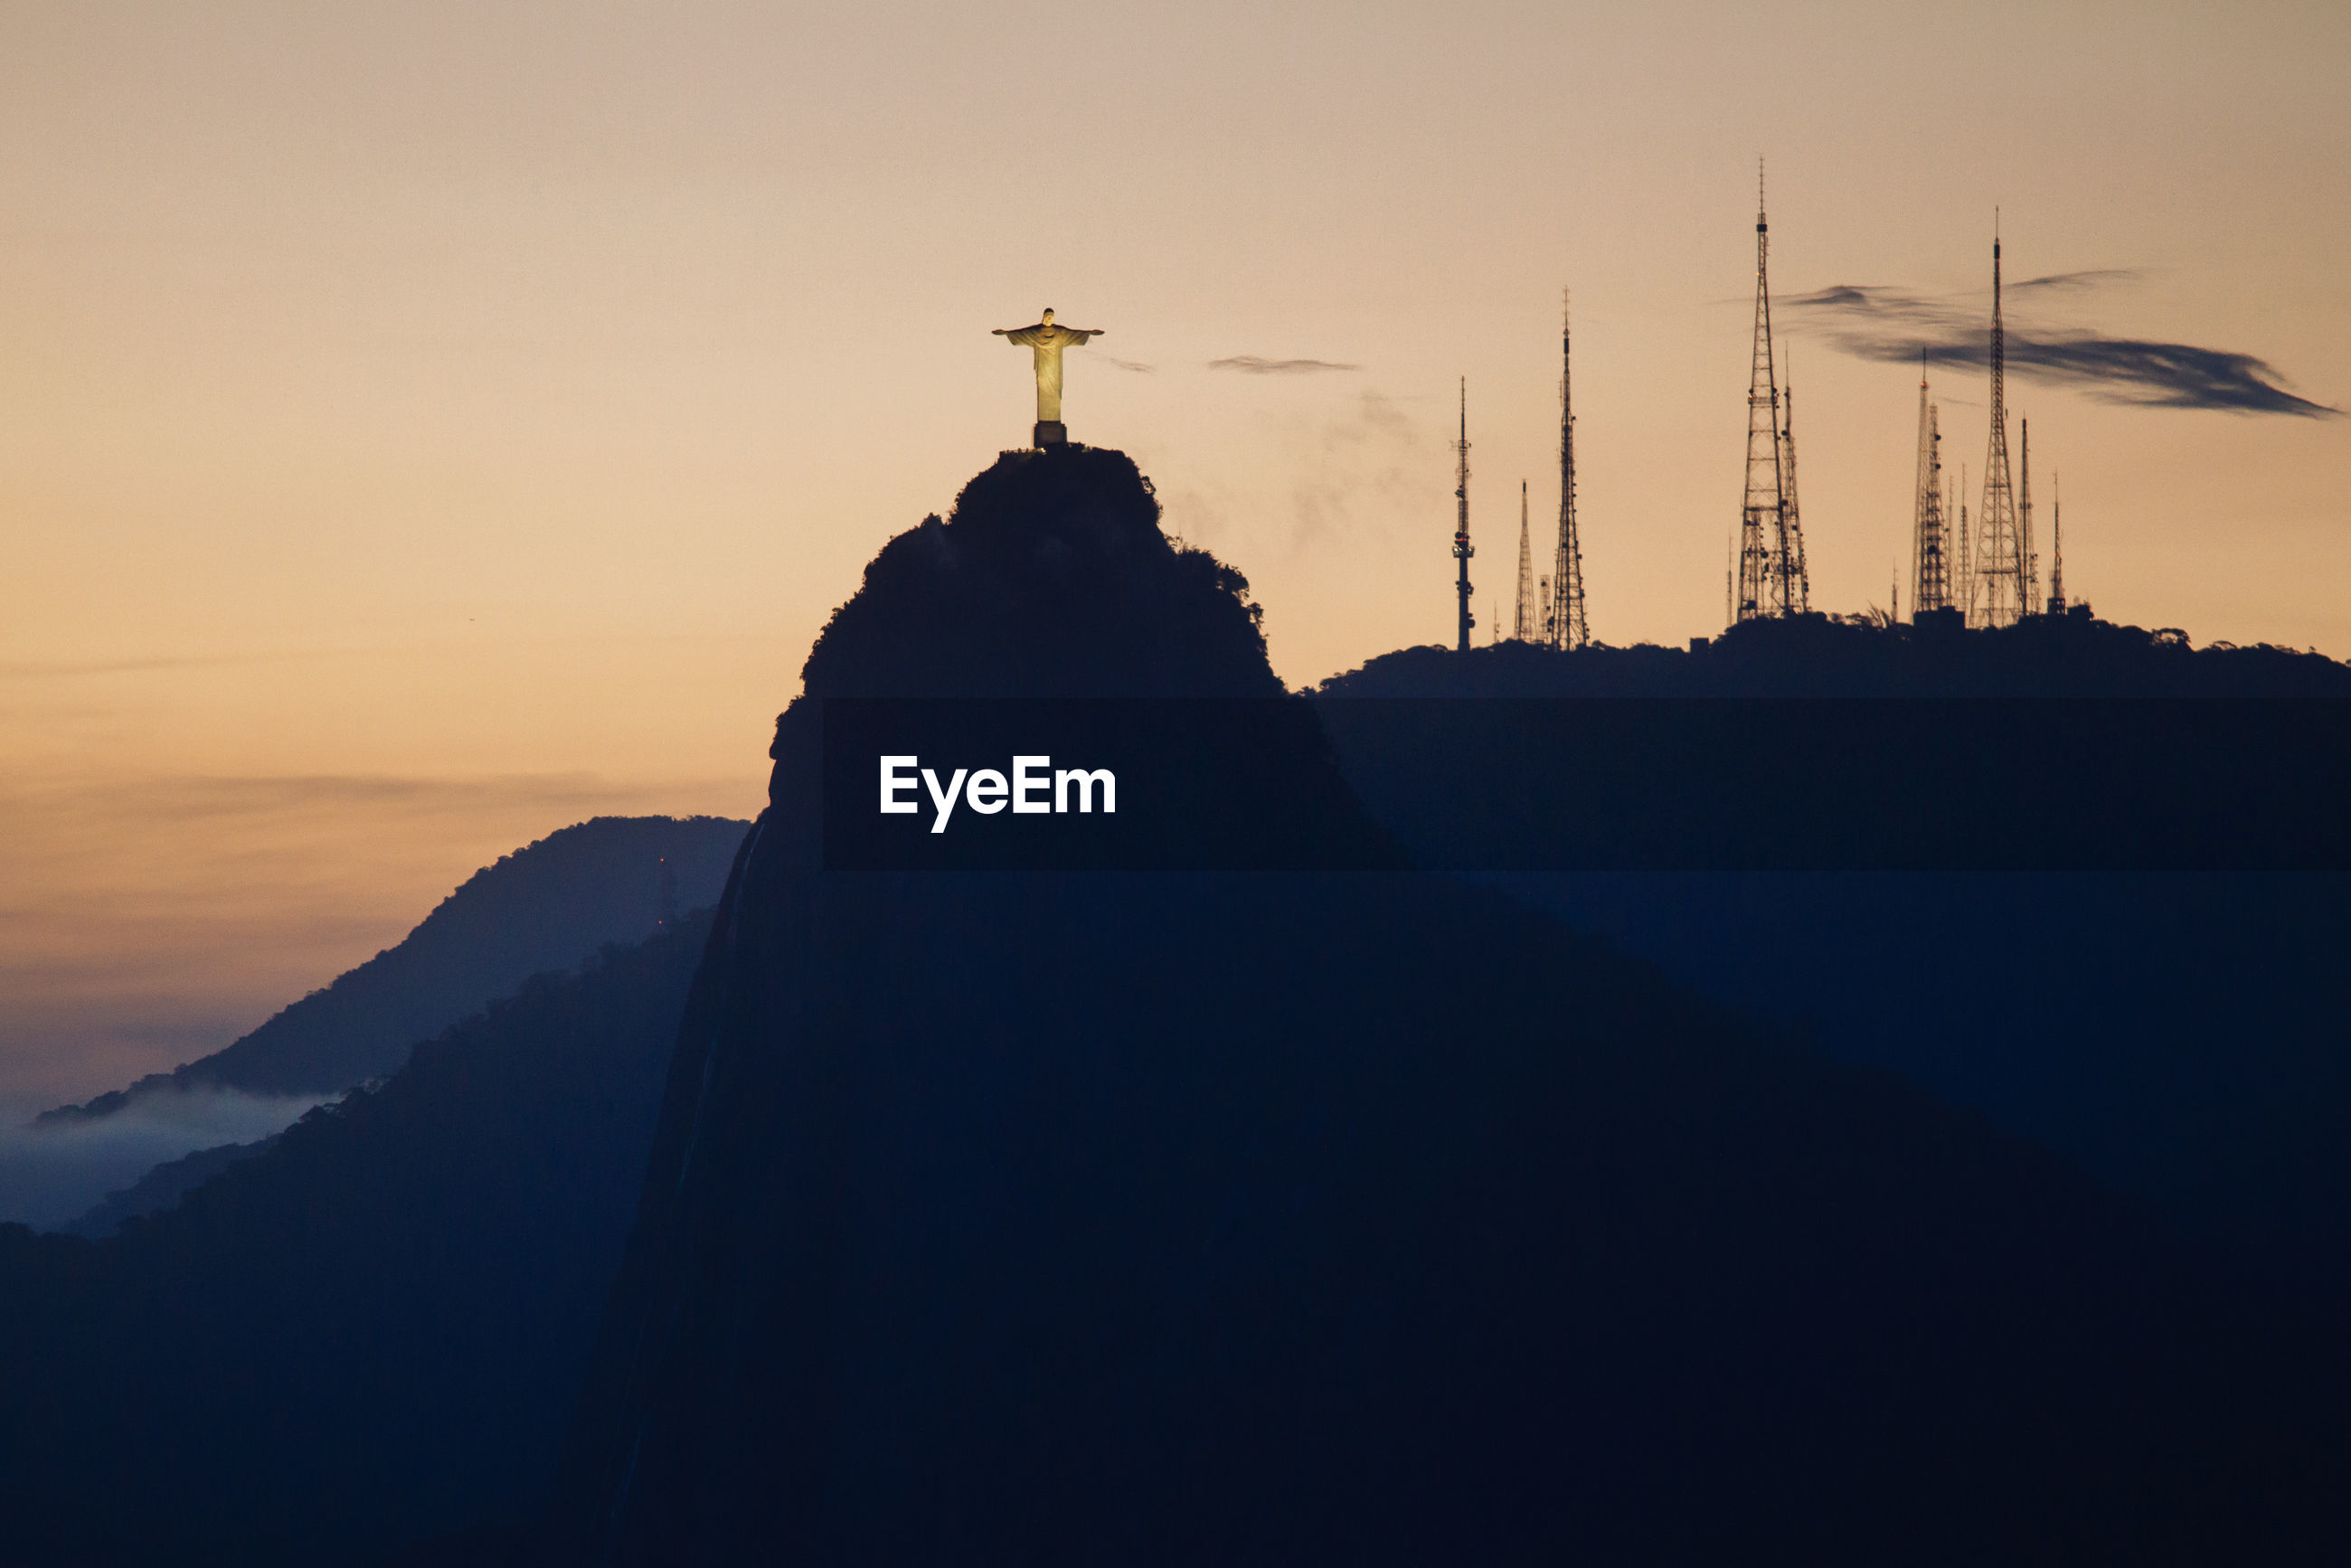 Christ the redeemer statue on mountain during sunset